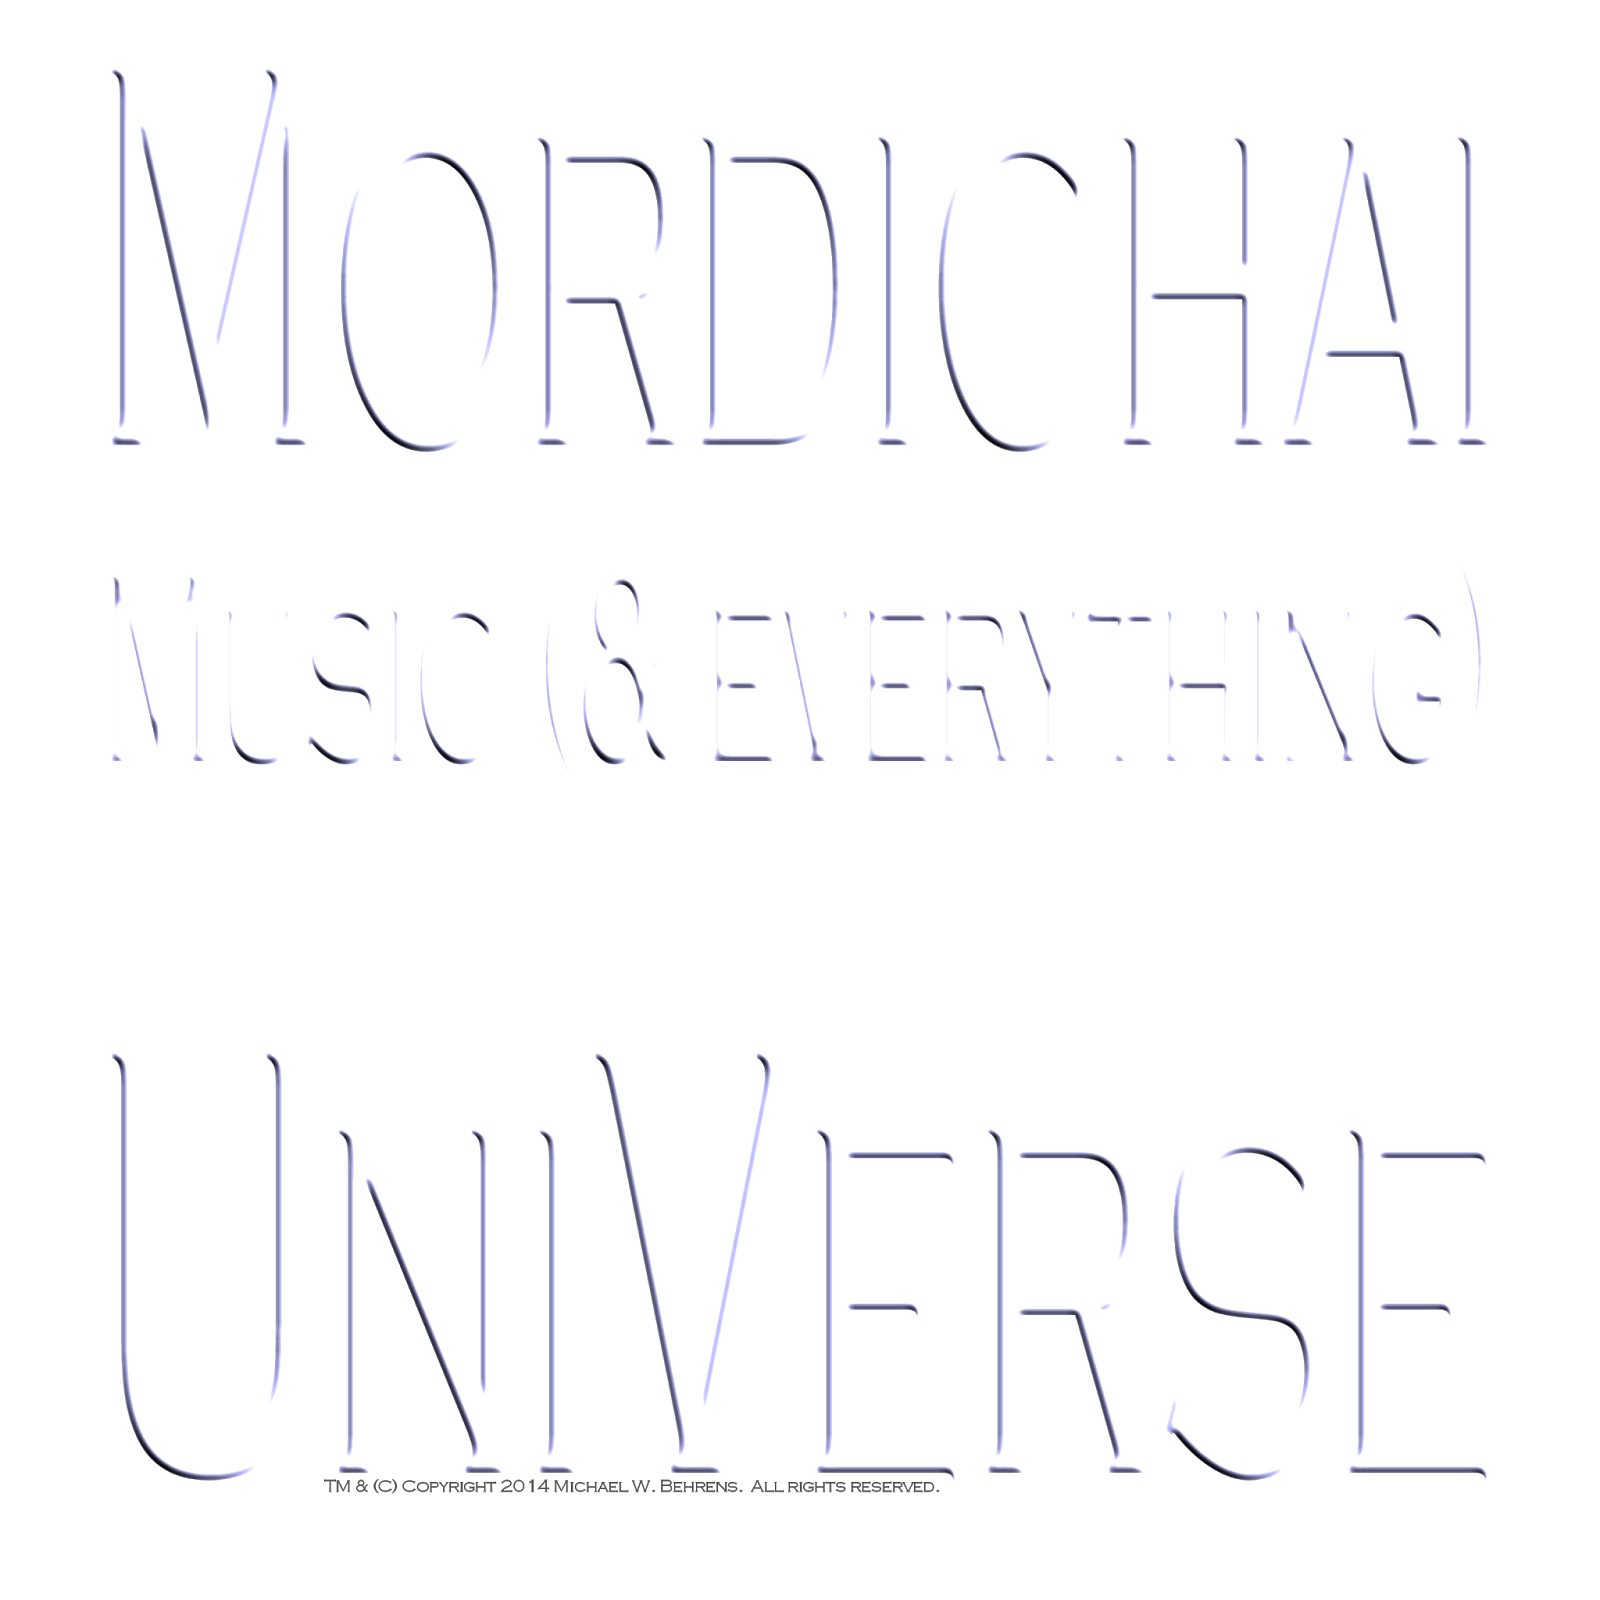 Mordichai Music (& everything) UniVerse RedbluEDream.com